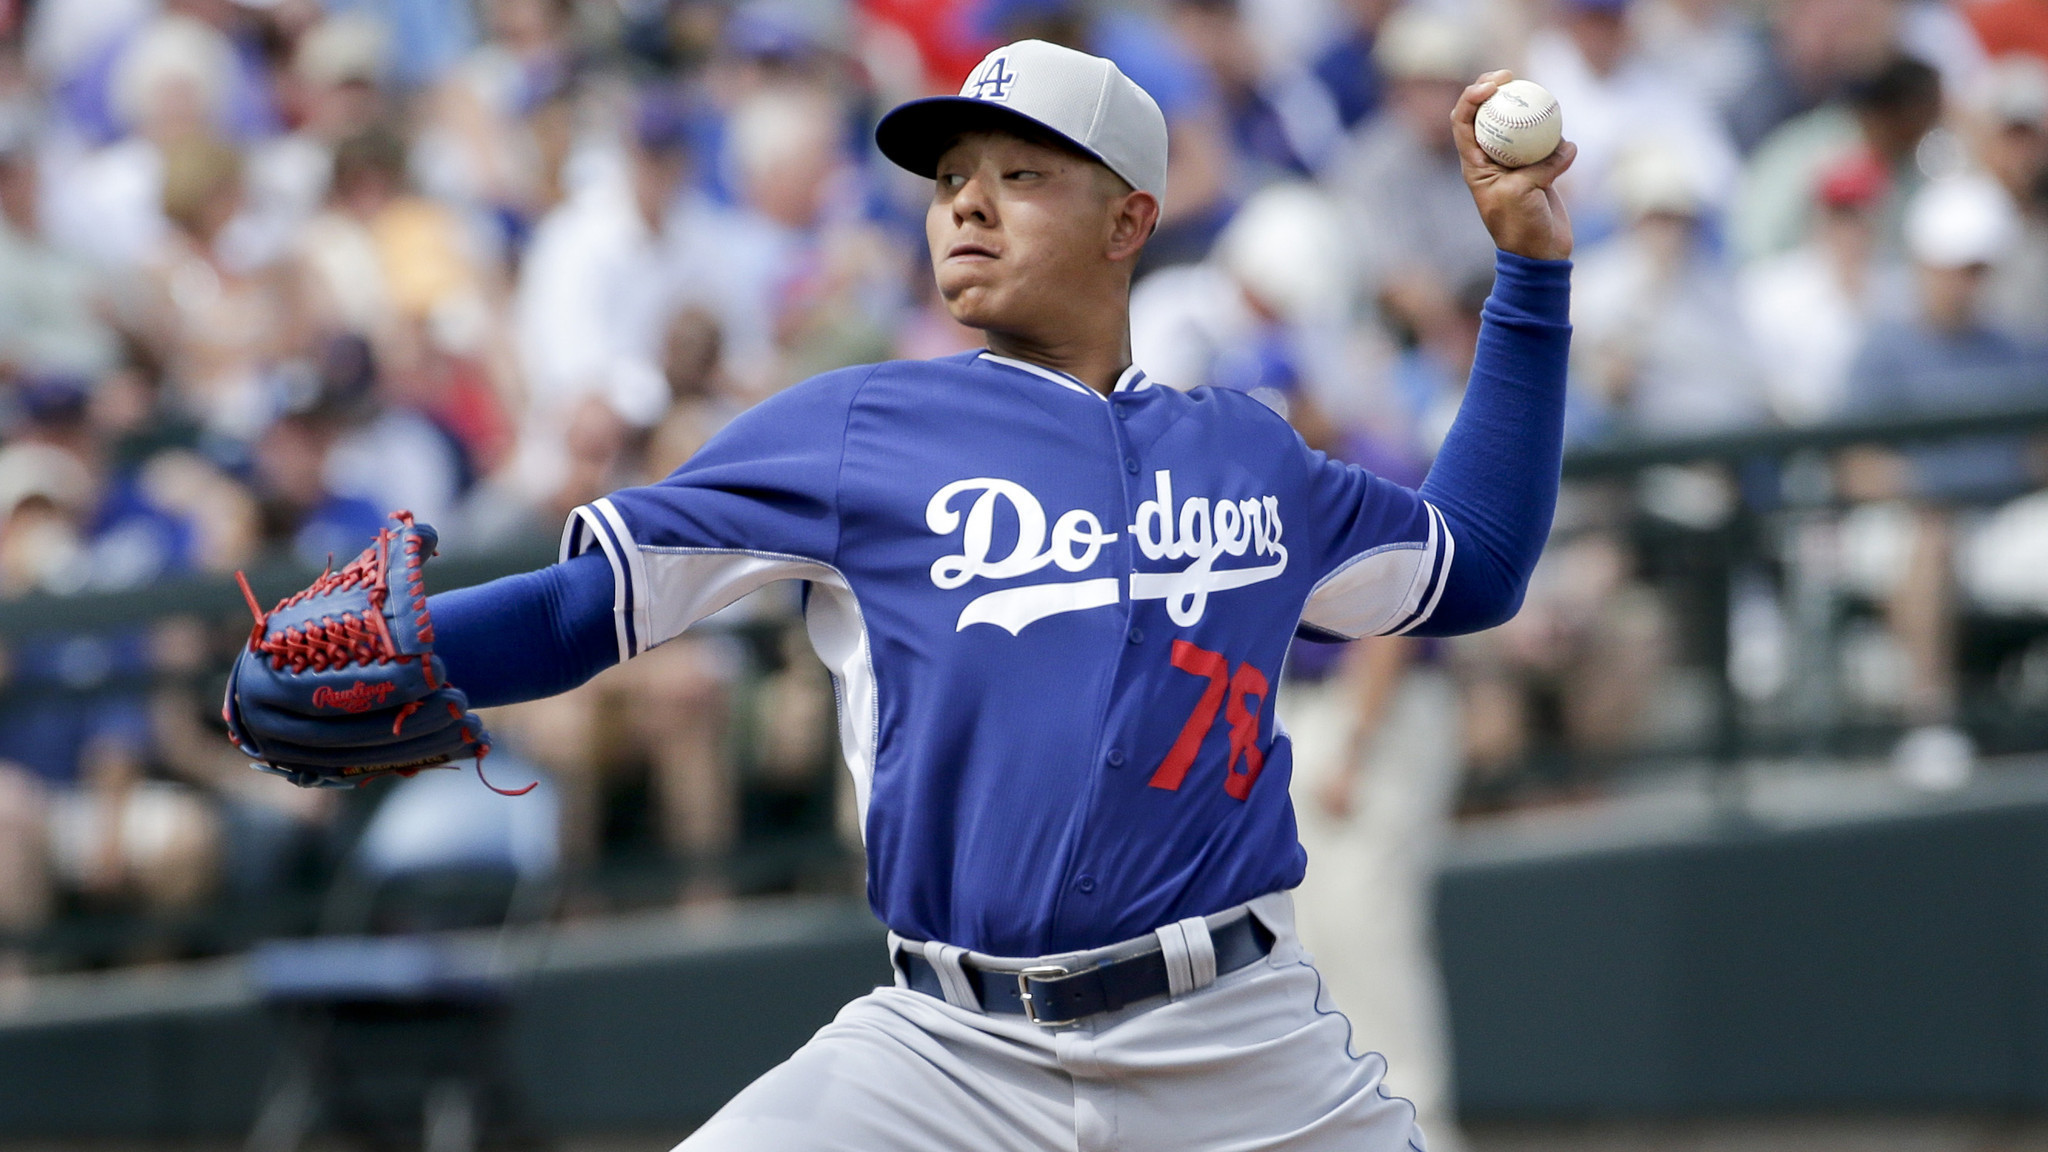 Let Julio Urias Pitch! - ladodgerreport.com